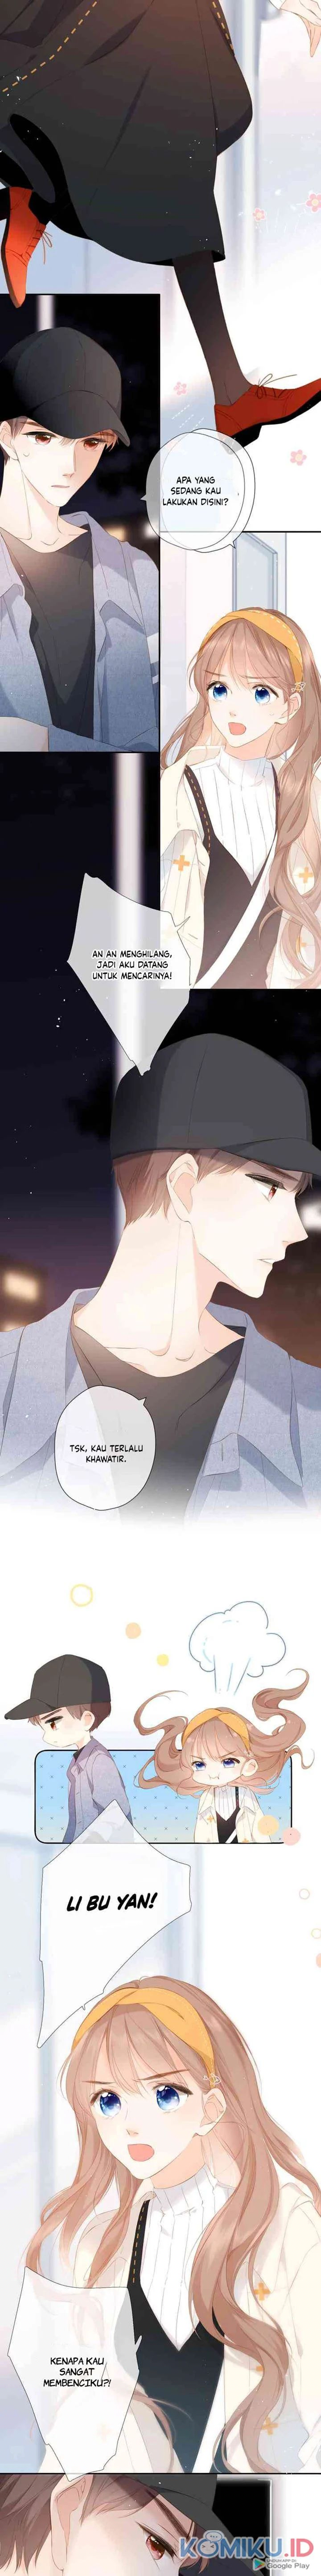 Once More Chapter 27